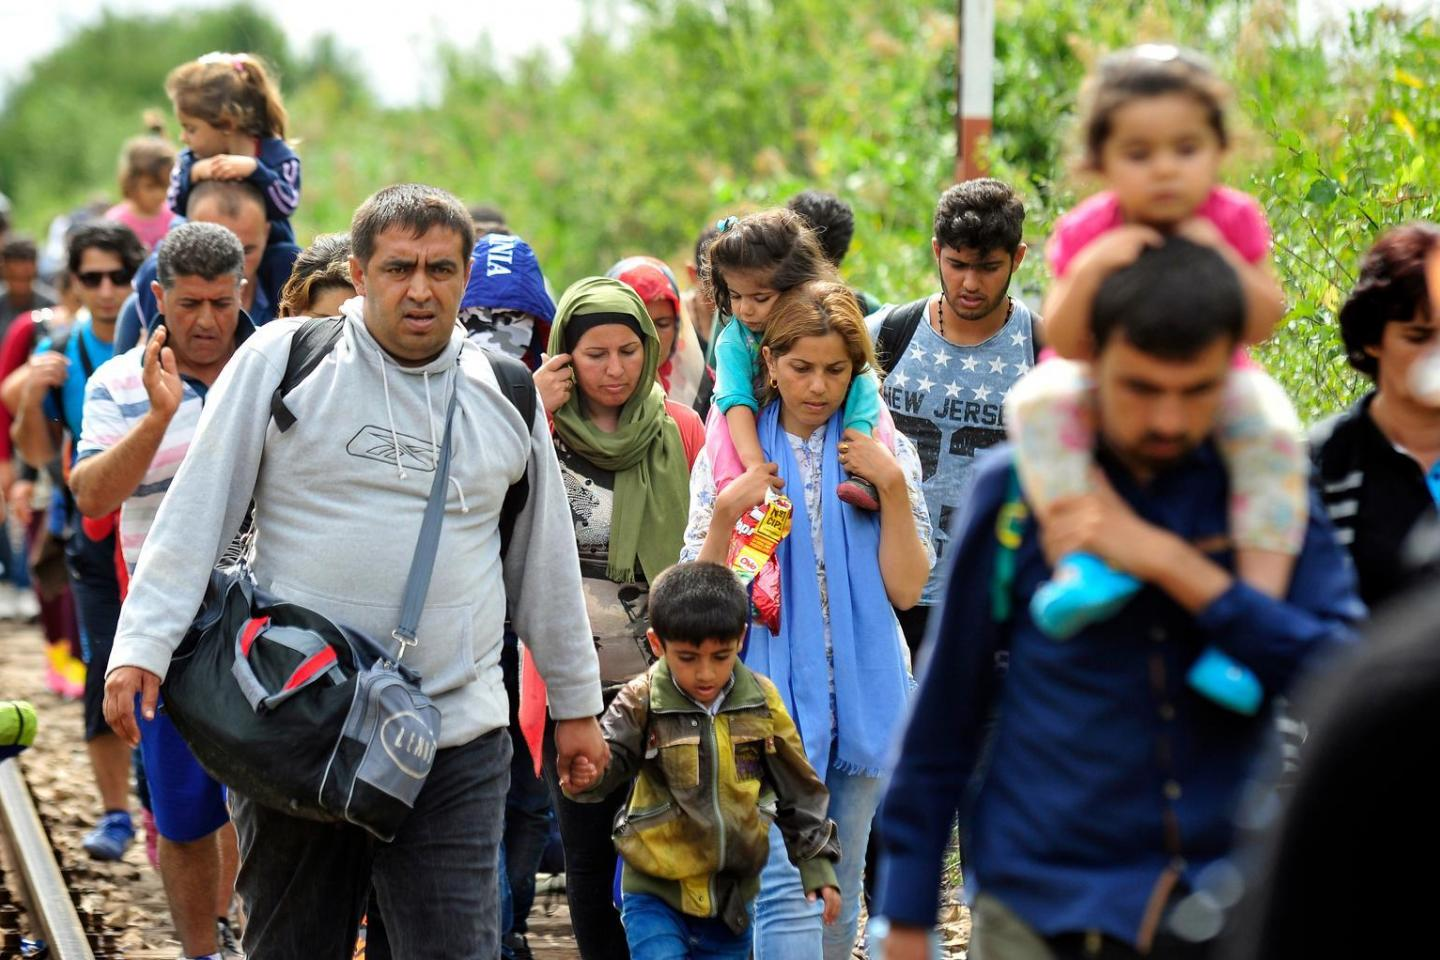 Refugee and migrant families walk along the railway tracks to cross from the former Yugoslav Republic of Macedonia into Serbia.